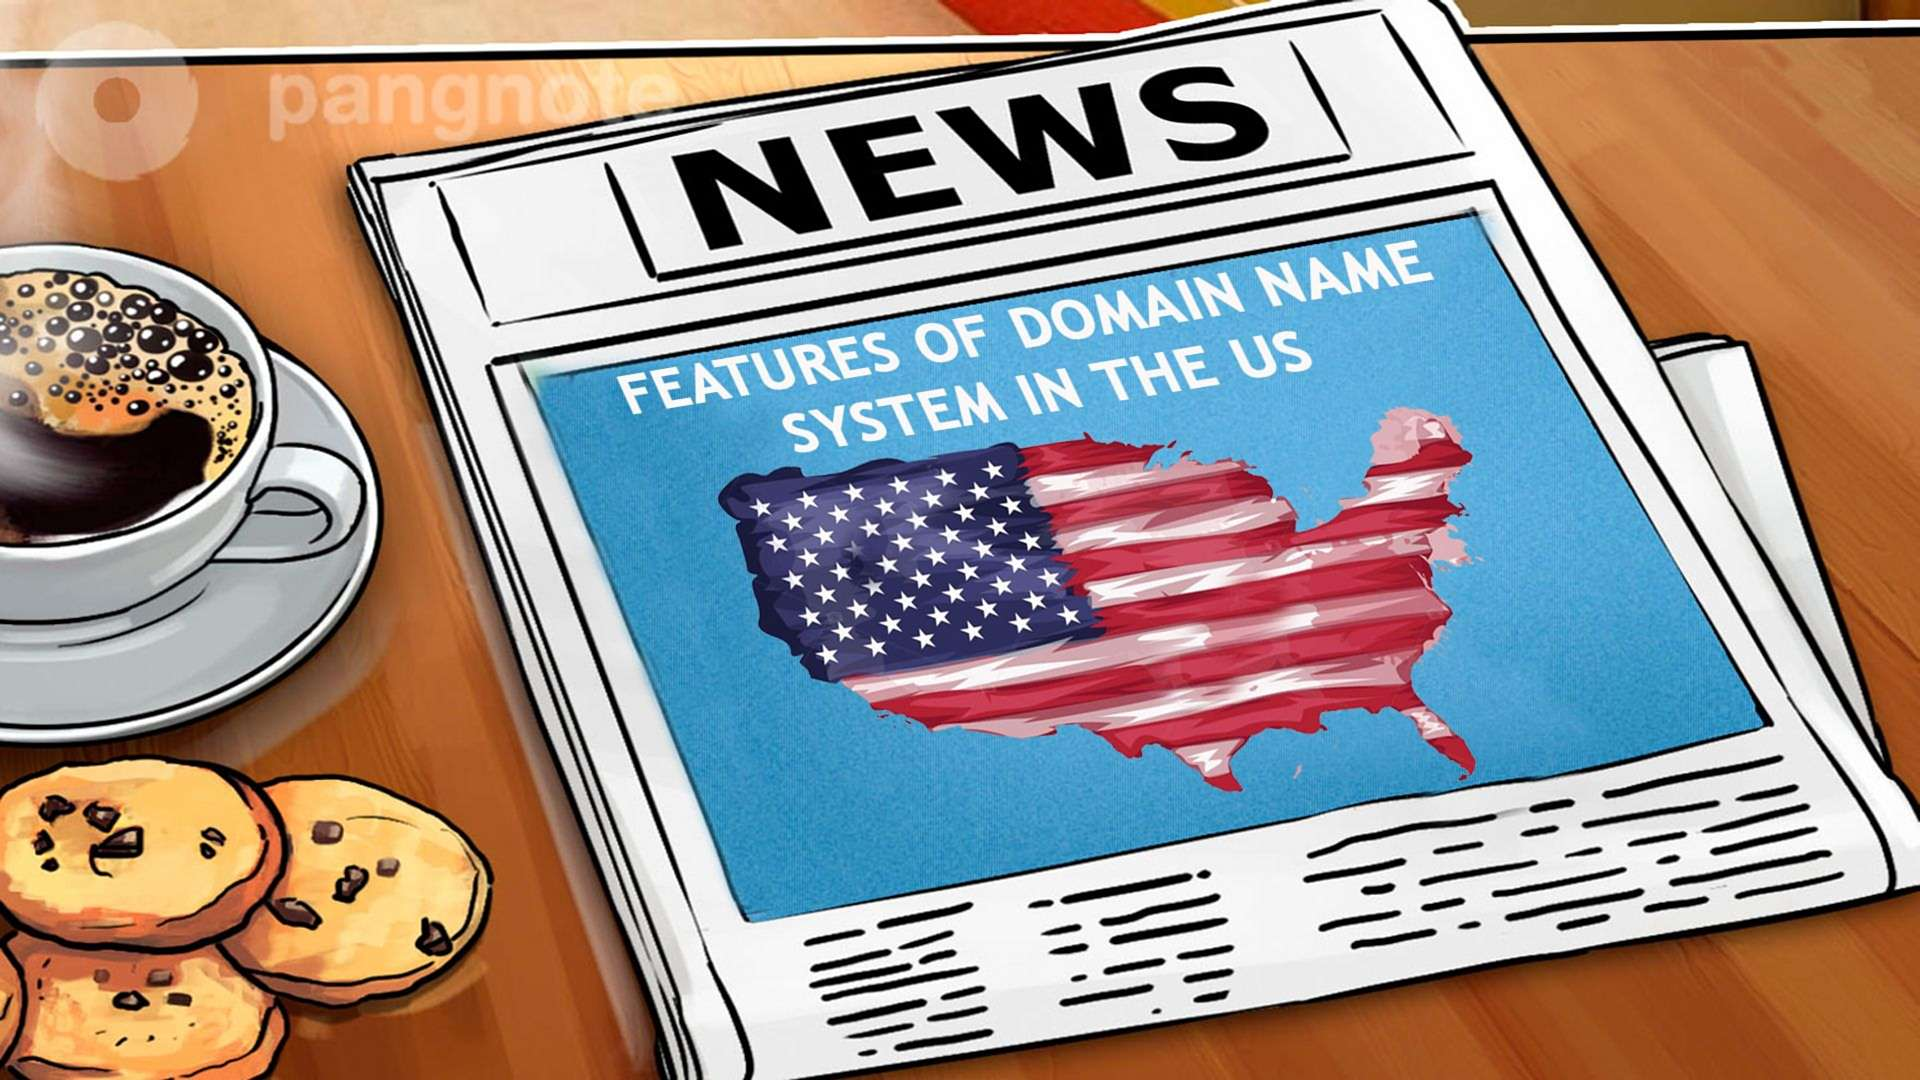 Features of domain name system in the US